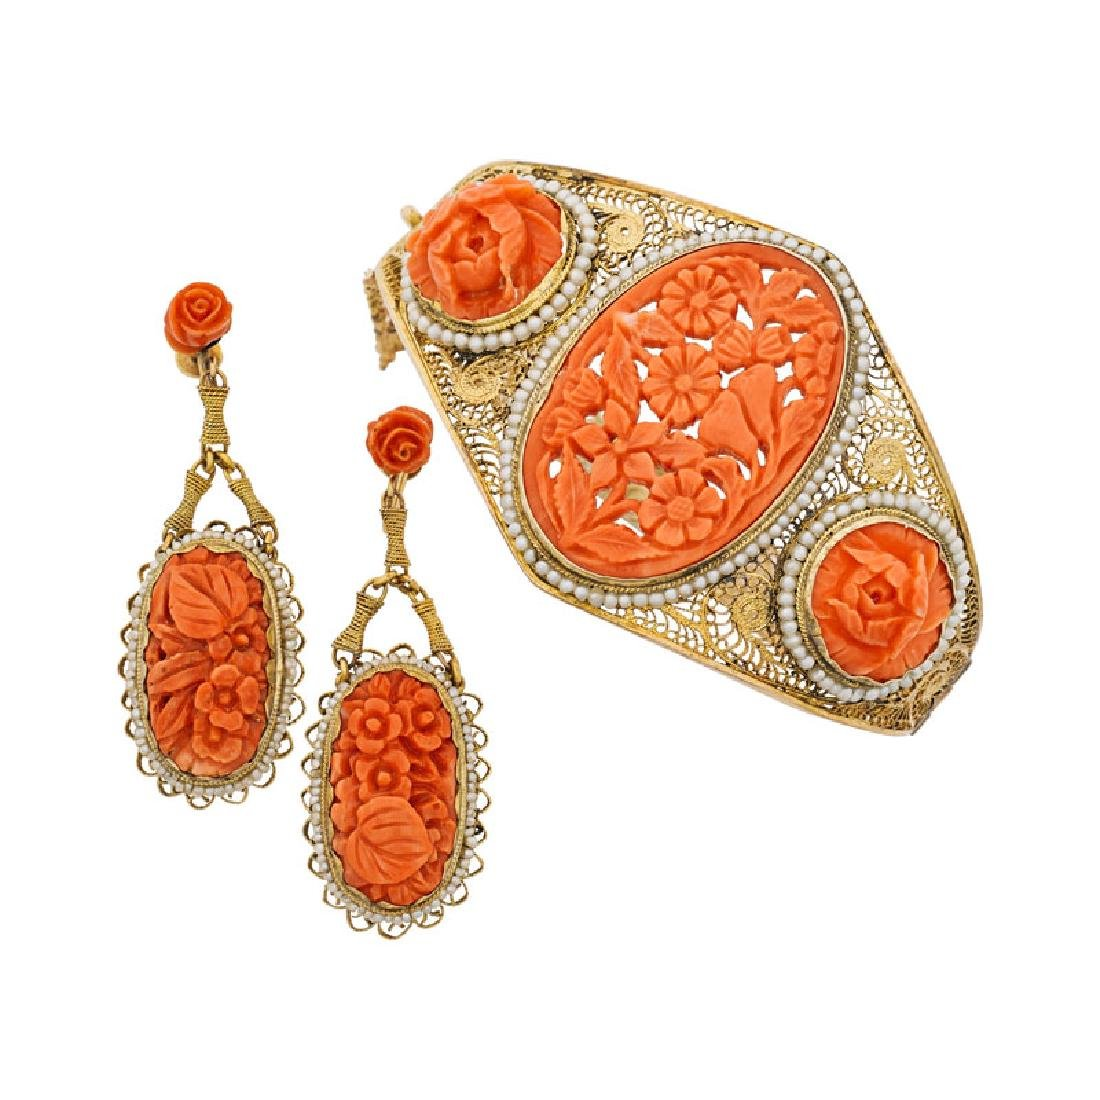 CARVED CORAL, SEED PEARL & YELLOW GOLD FILIGREE JEWELRY